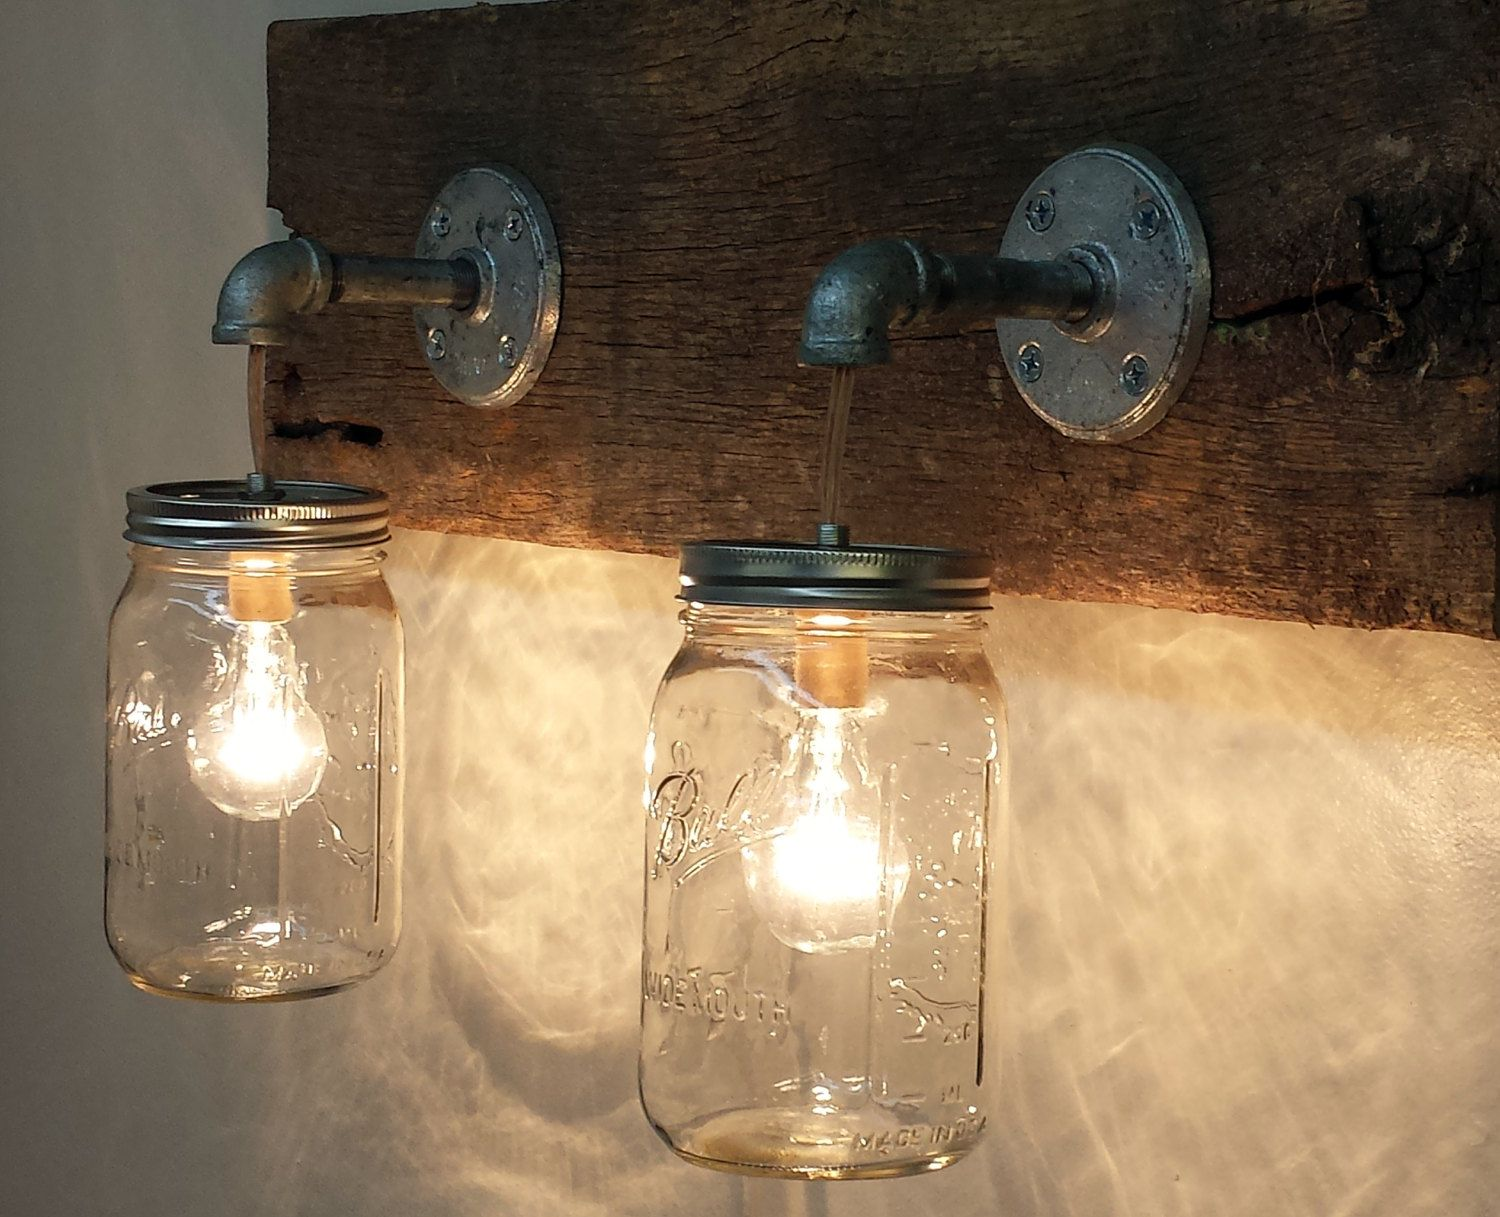 Mason jar 2 luminaire rustique rcupr grange par thepinktoolbox mason jar 2 light fixture rustic reclaimed barn wood mason jar hanging light fixture industrial made in america primitive bathroom vanity arubaitofo Gallery